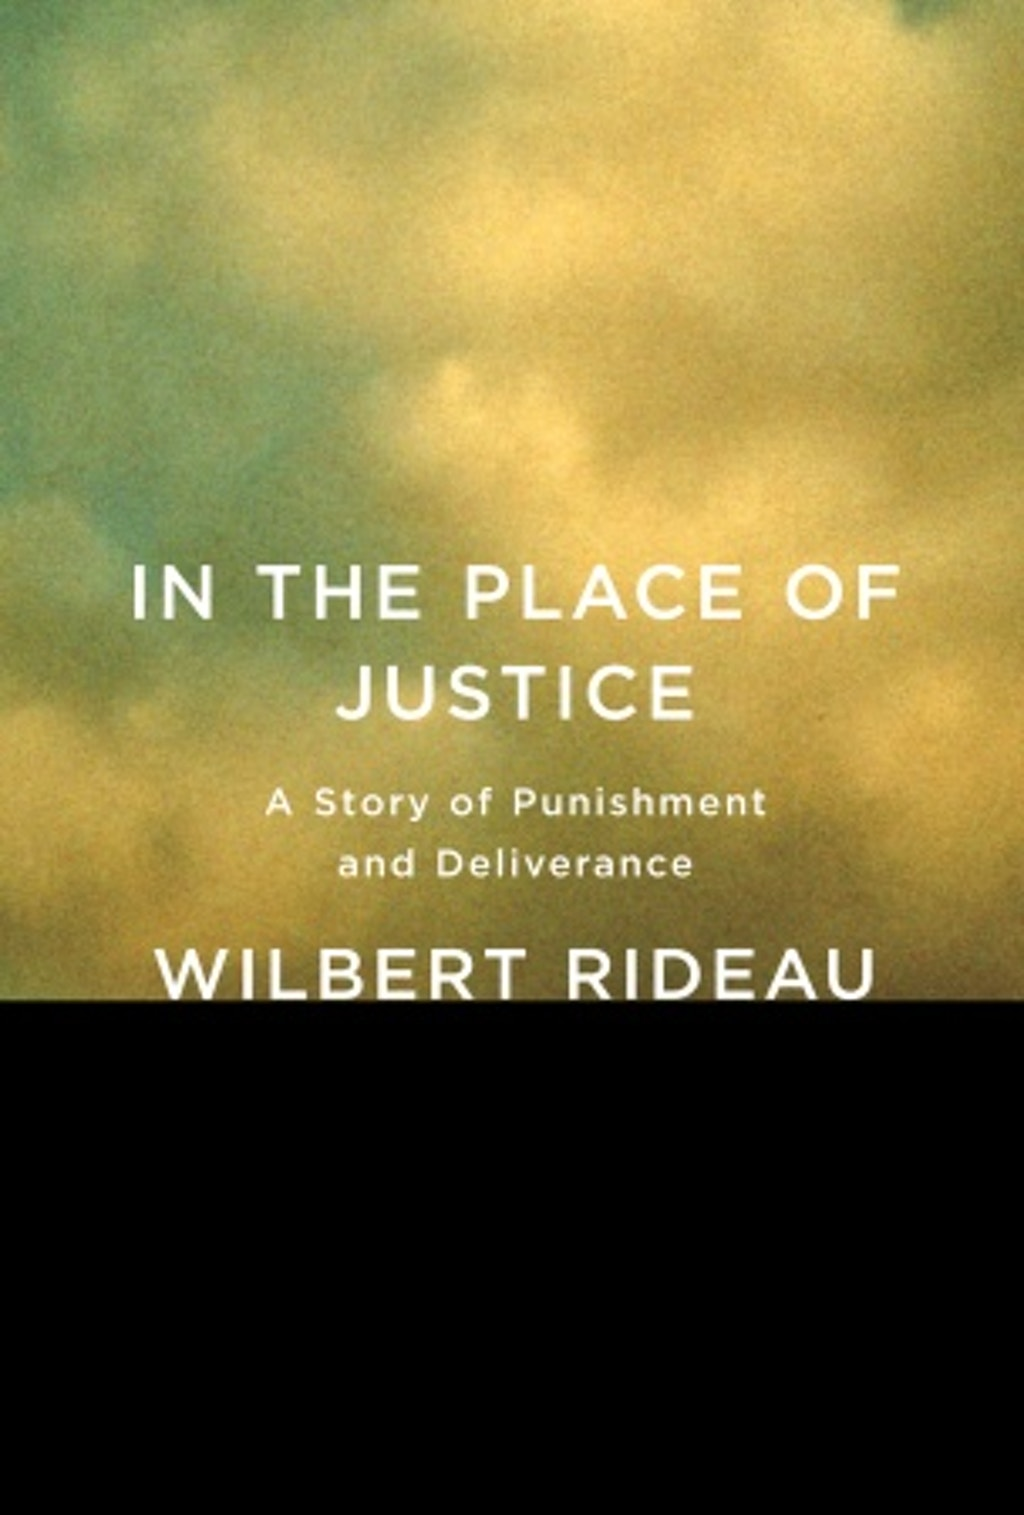 BOOKS: In the Place of Justice--A Story of Punishment and Deliverance